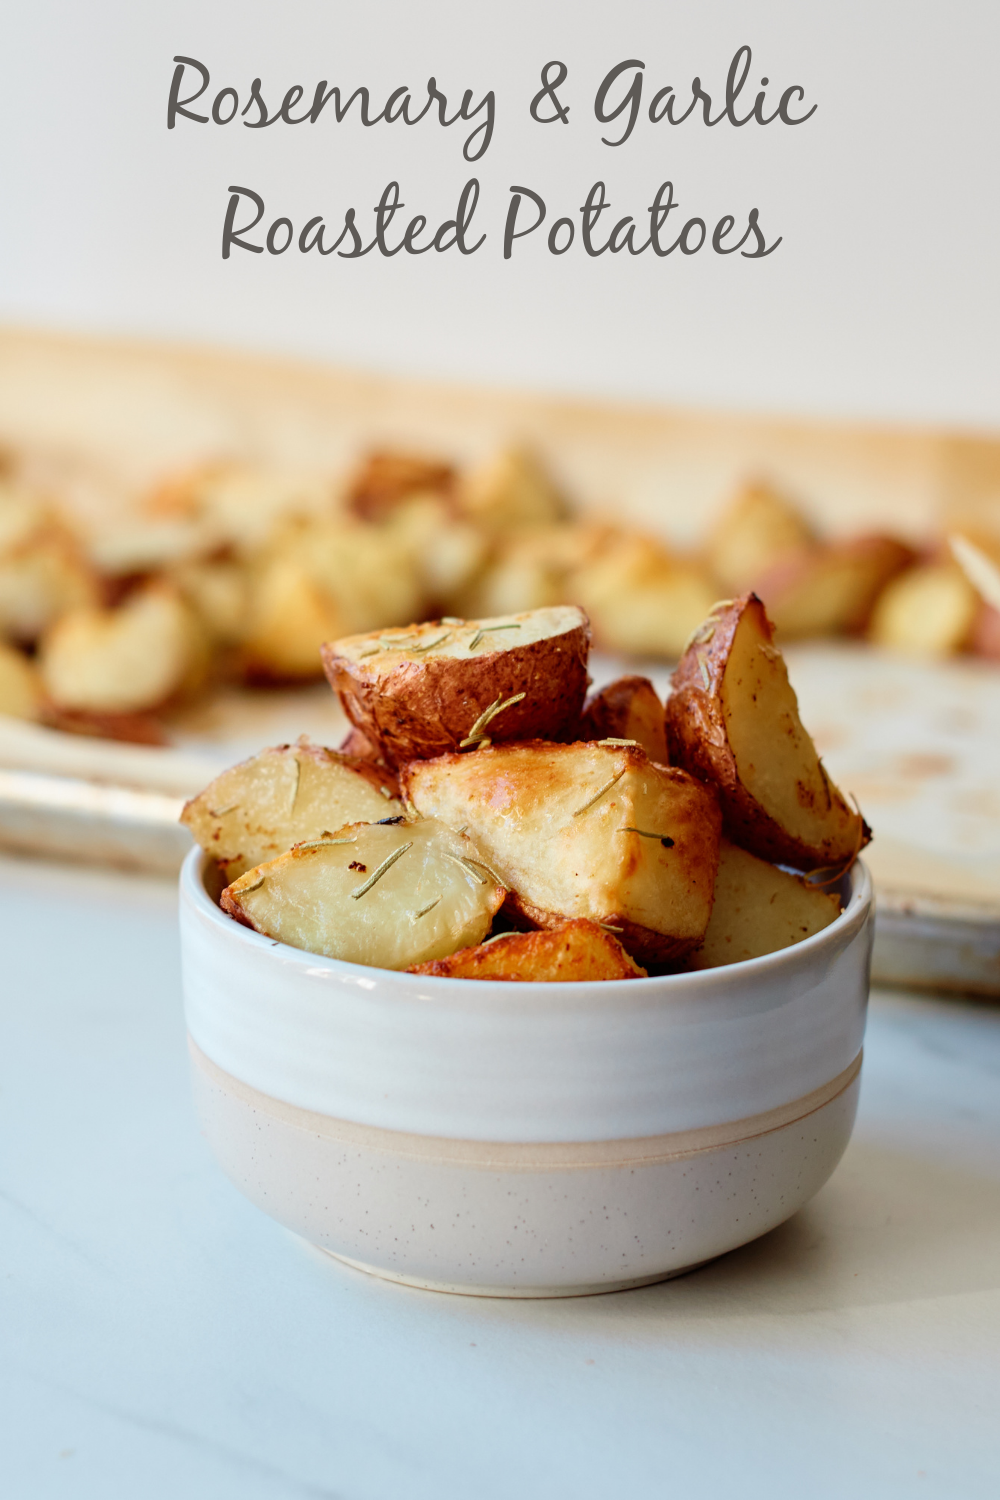 Flavorful rosemary mingles with garlic to make these delicious Roasted Potatoes that are the perfect side dish for any meal.